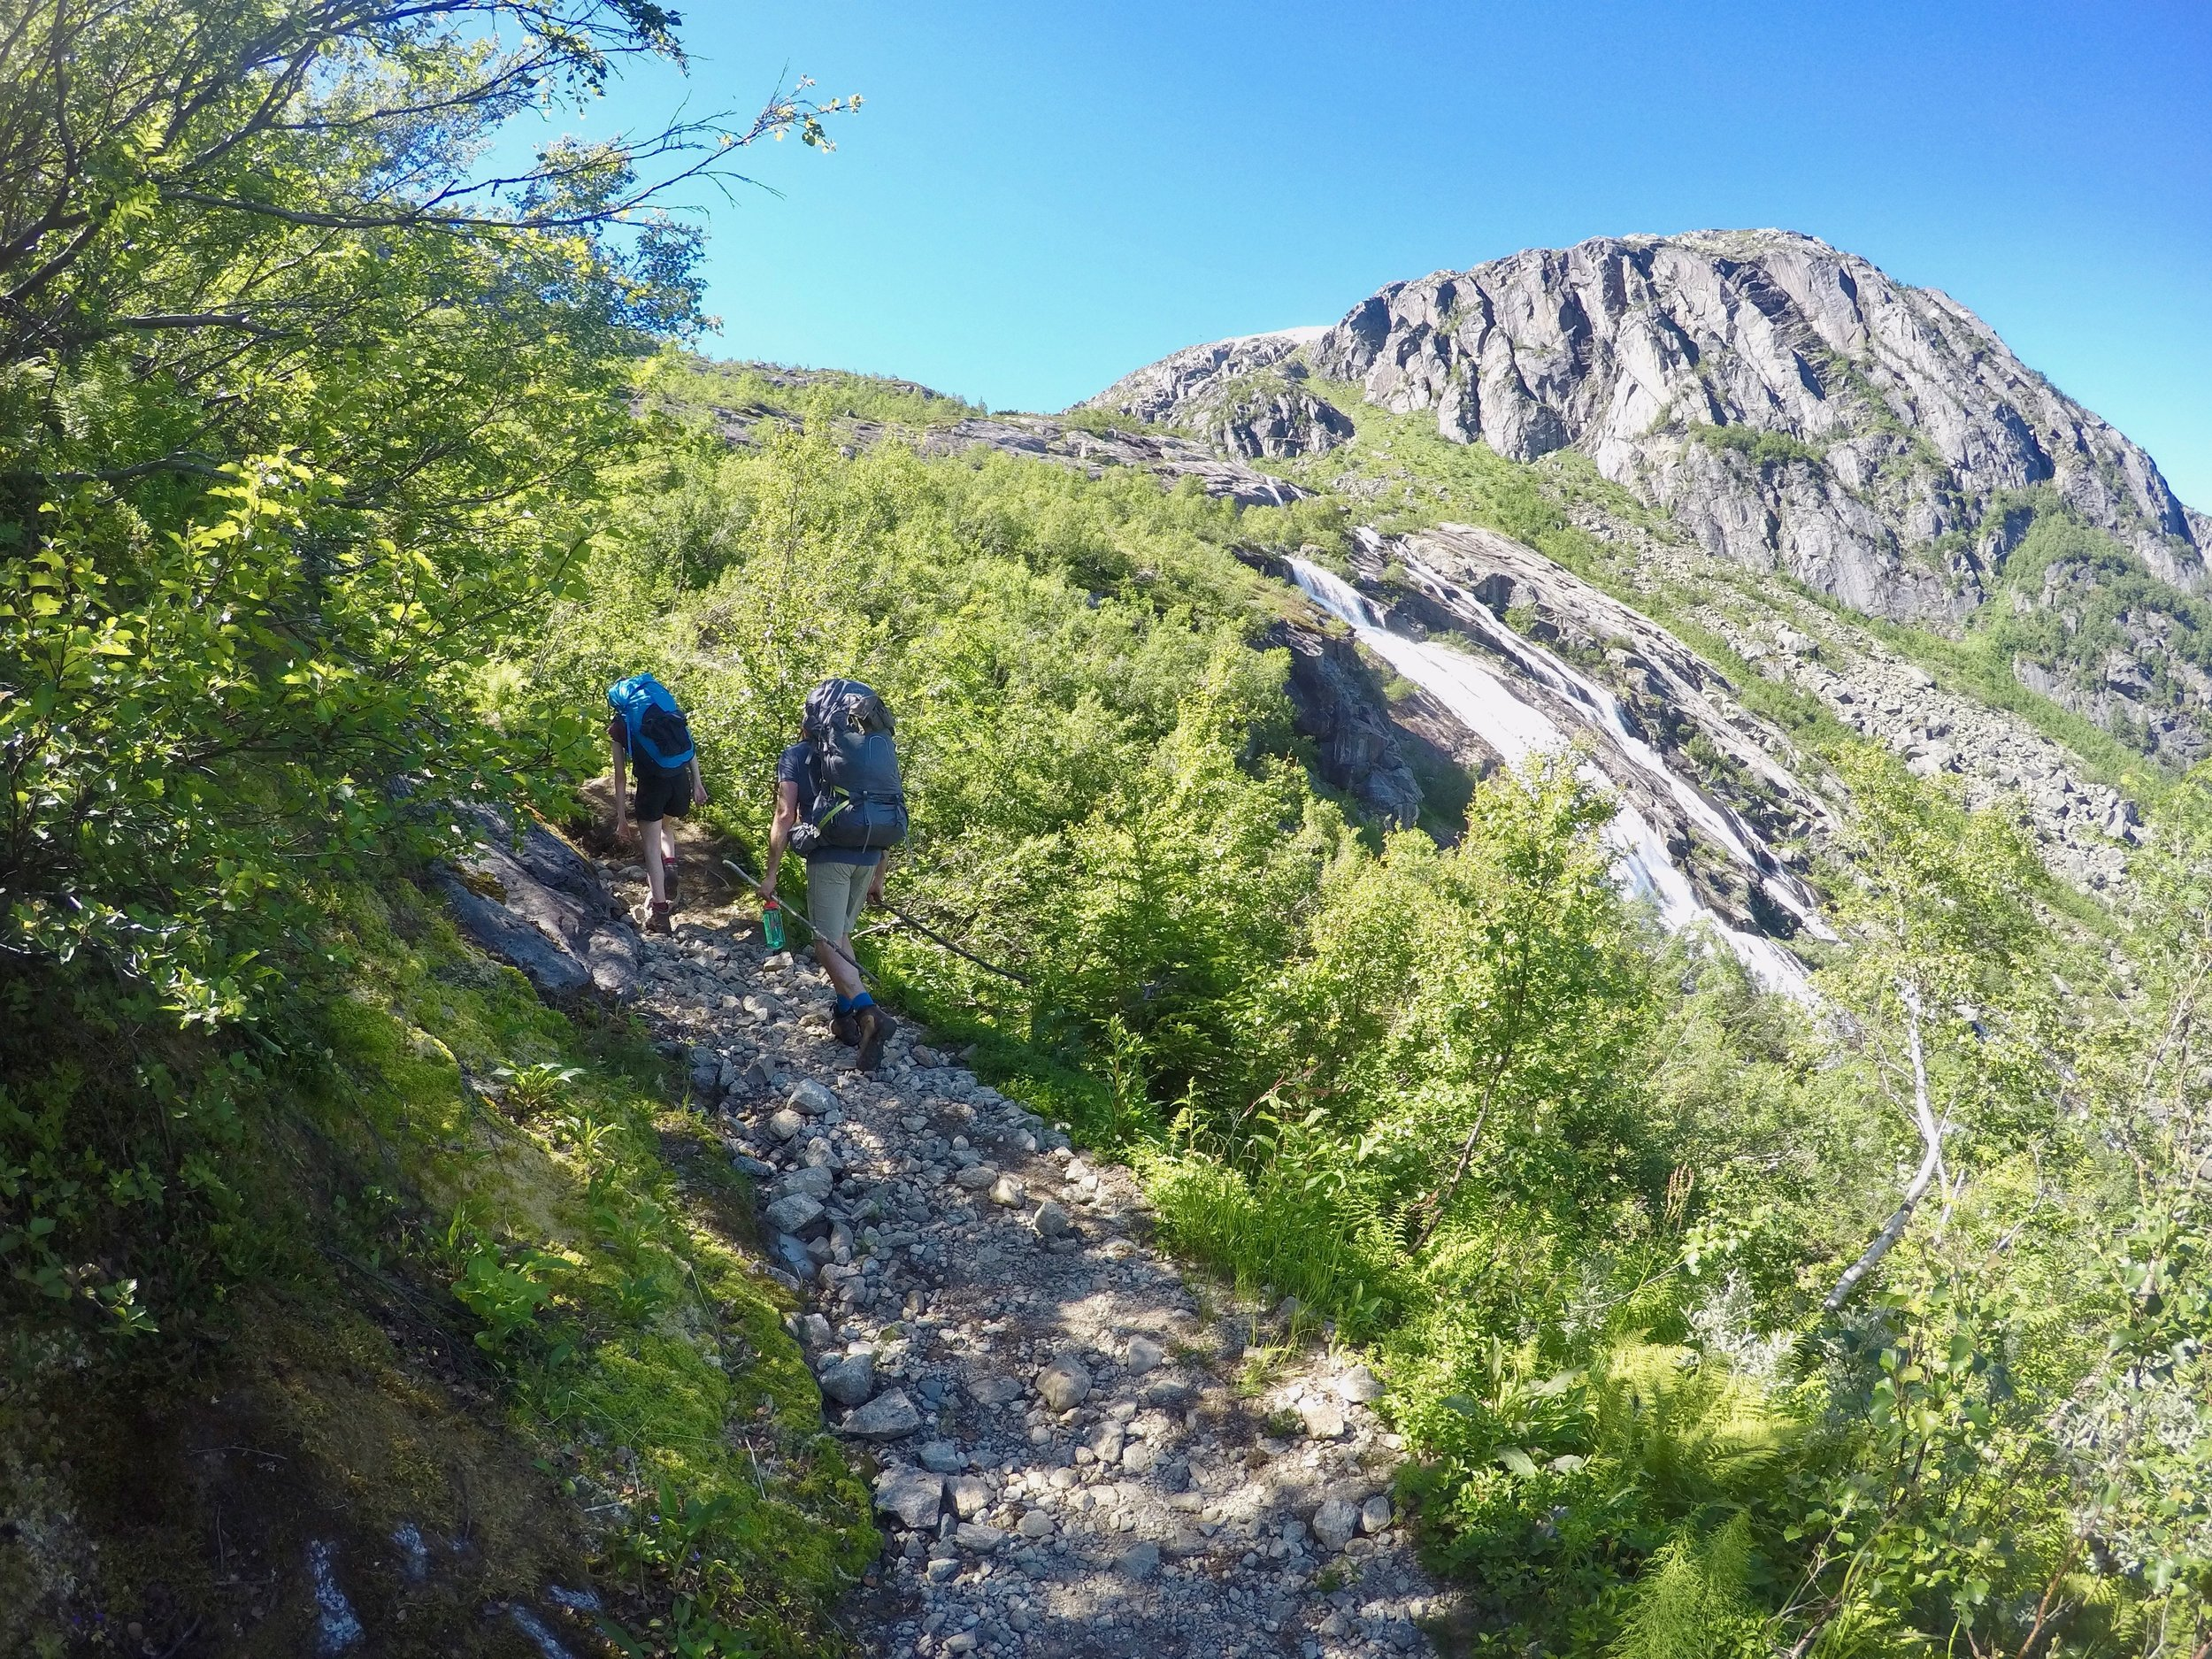 Mountain hiking, passing waterfalls on the way. Photo: Oslo Outdoor